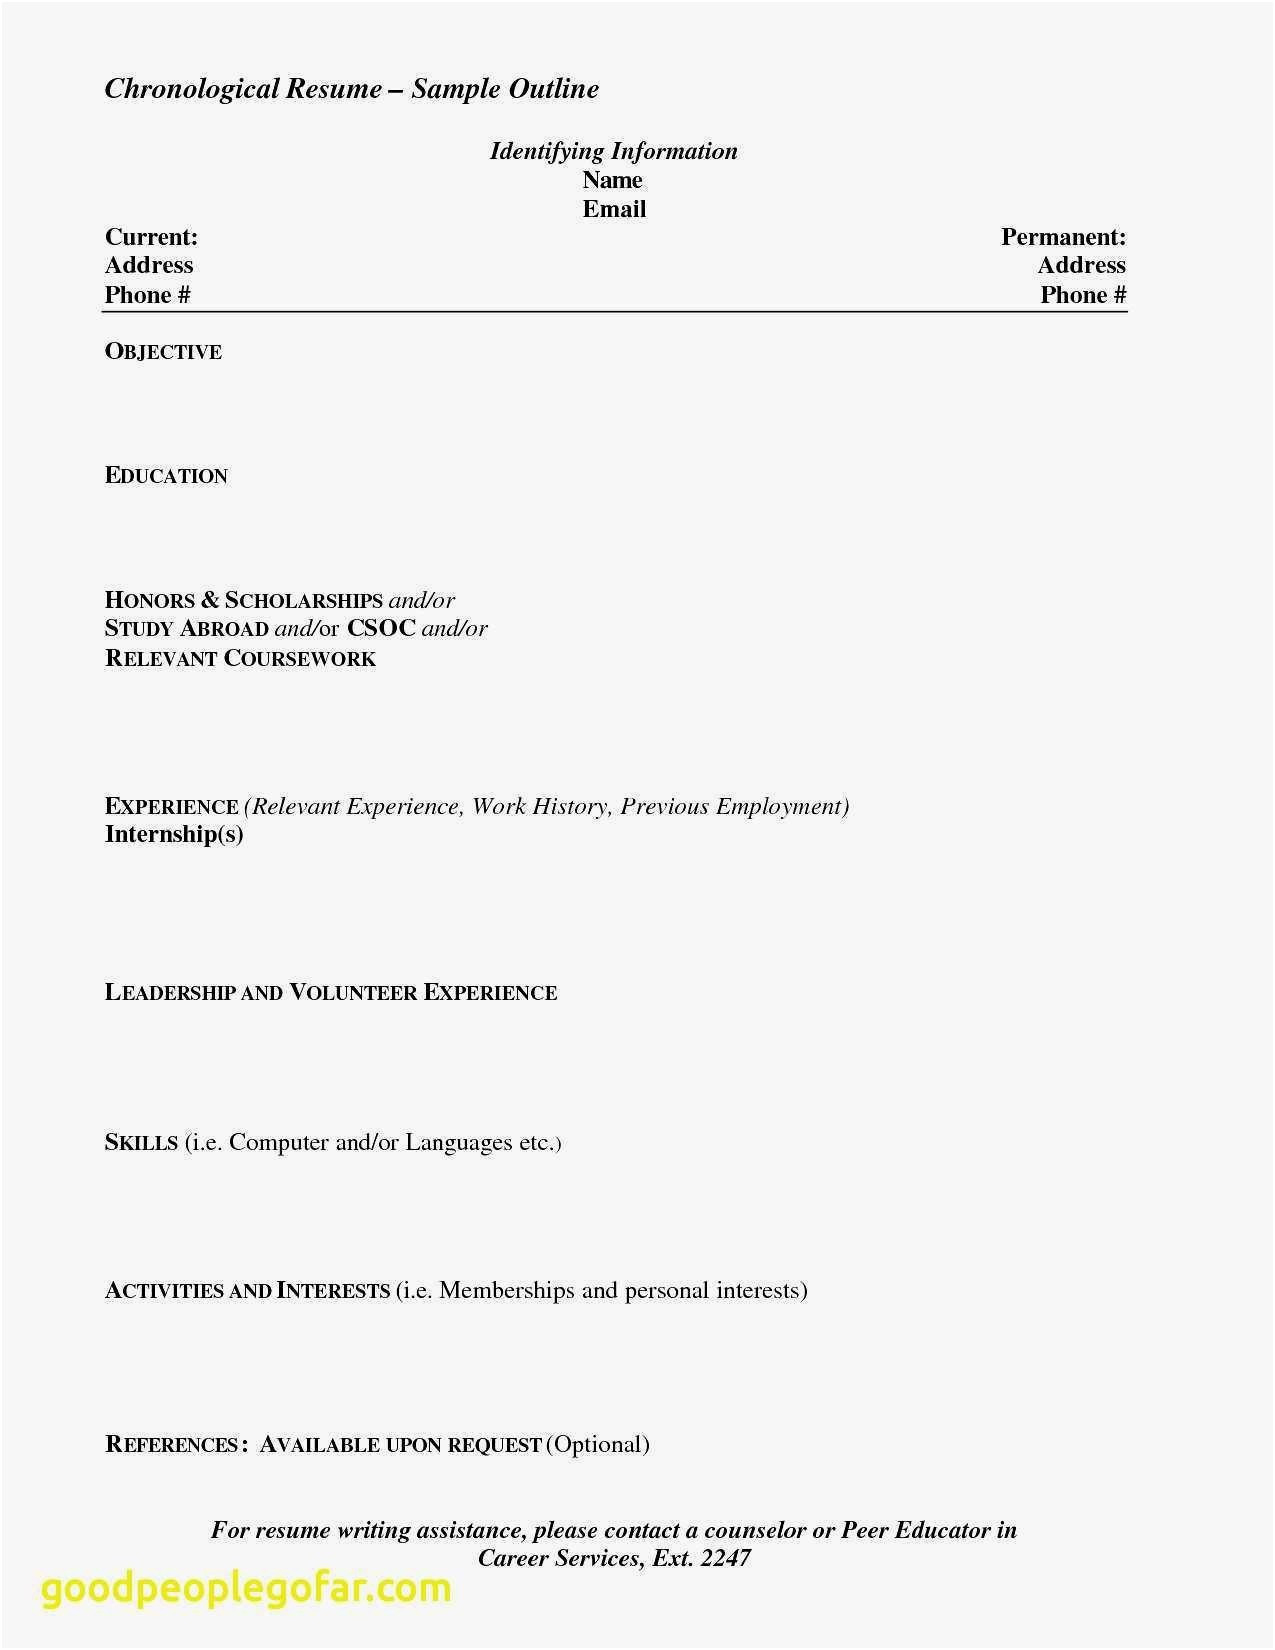 Resume for Scholarships Template - Sample Resume for Recent High School Graduate Reference Unique